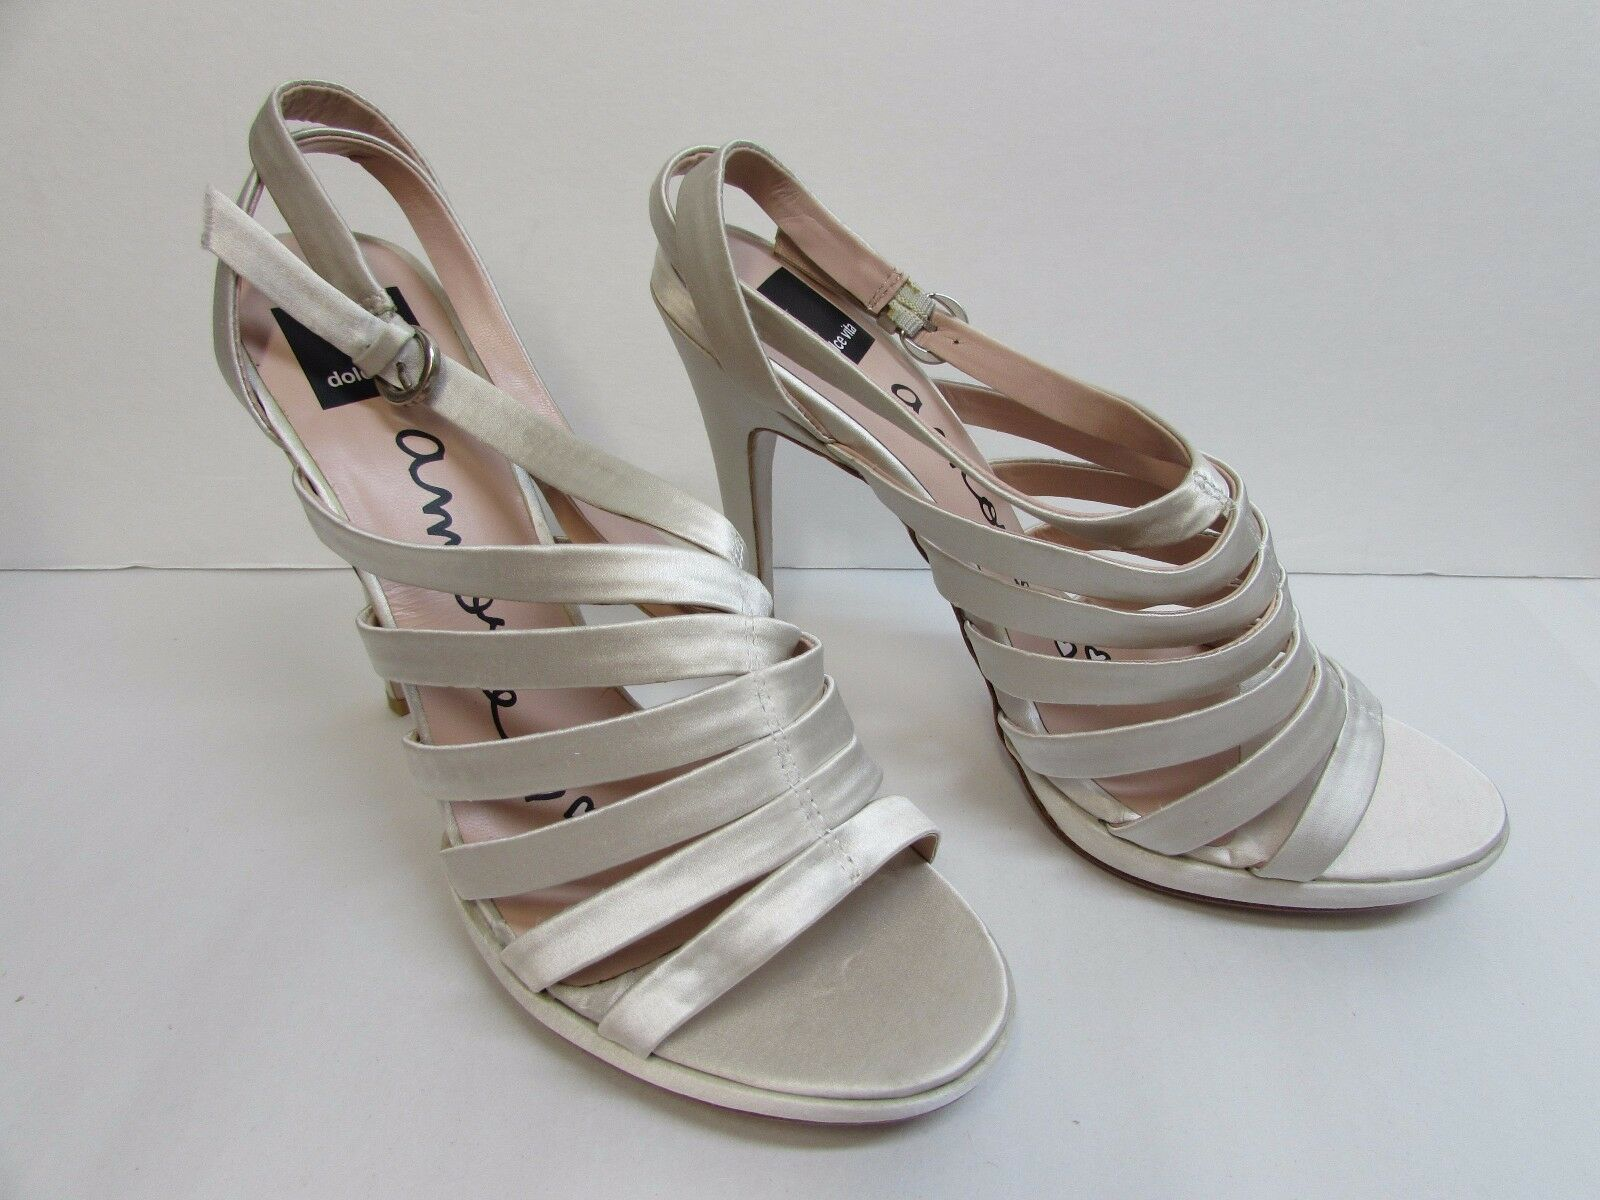 Dolce Vita Size 8.5 Ivory Satin Heels Heels Heels New Donna Shoes 70a51c